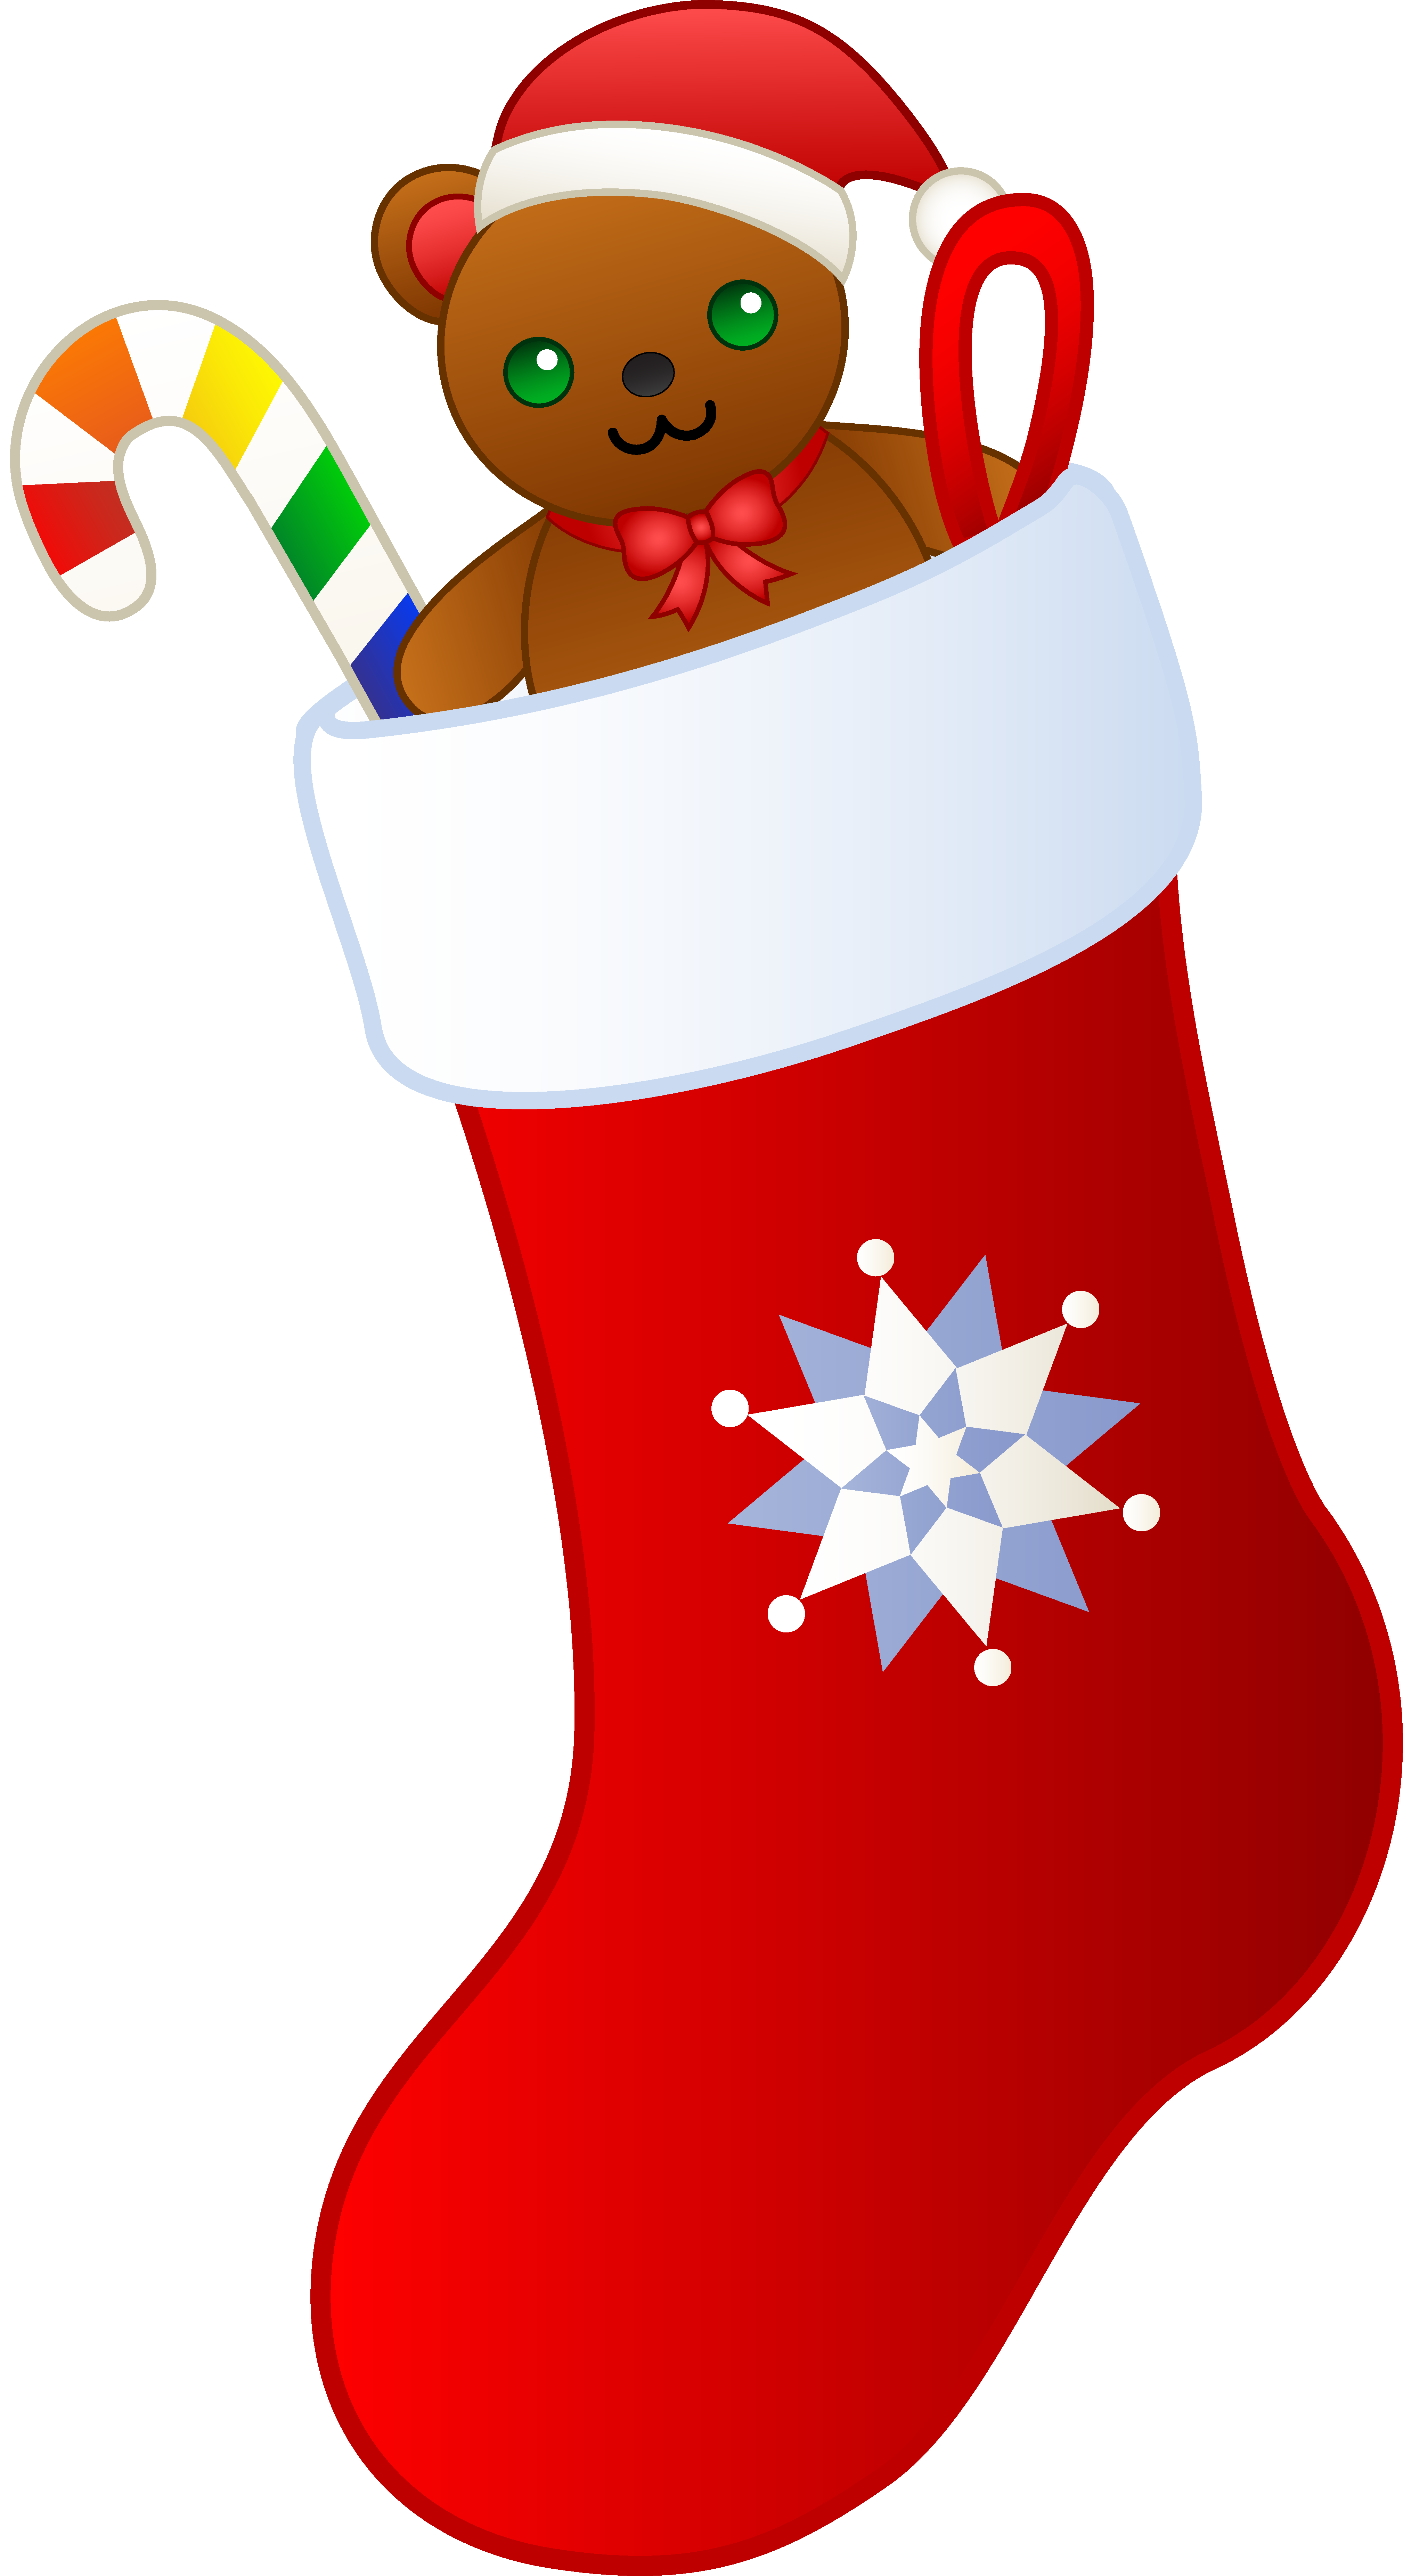 4037x7412 Christmas Stocking Filled With Gifts